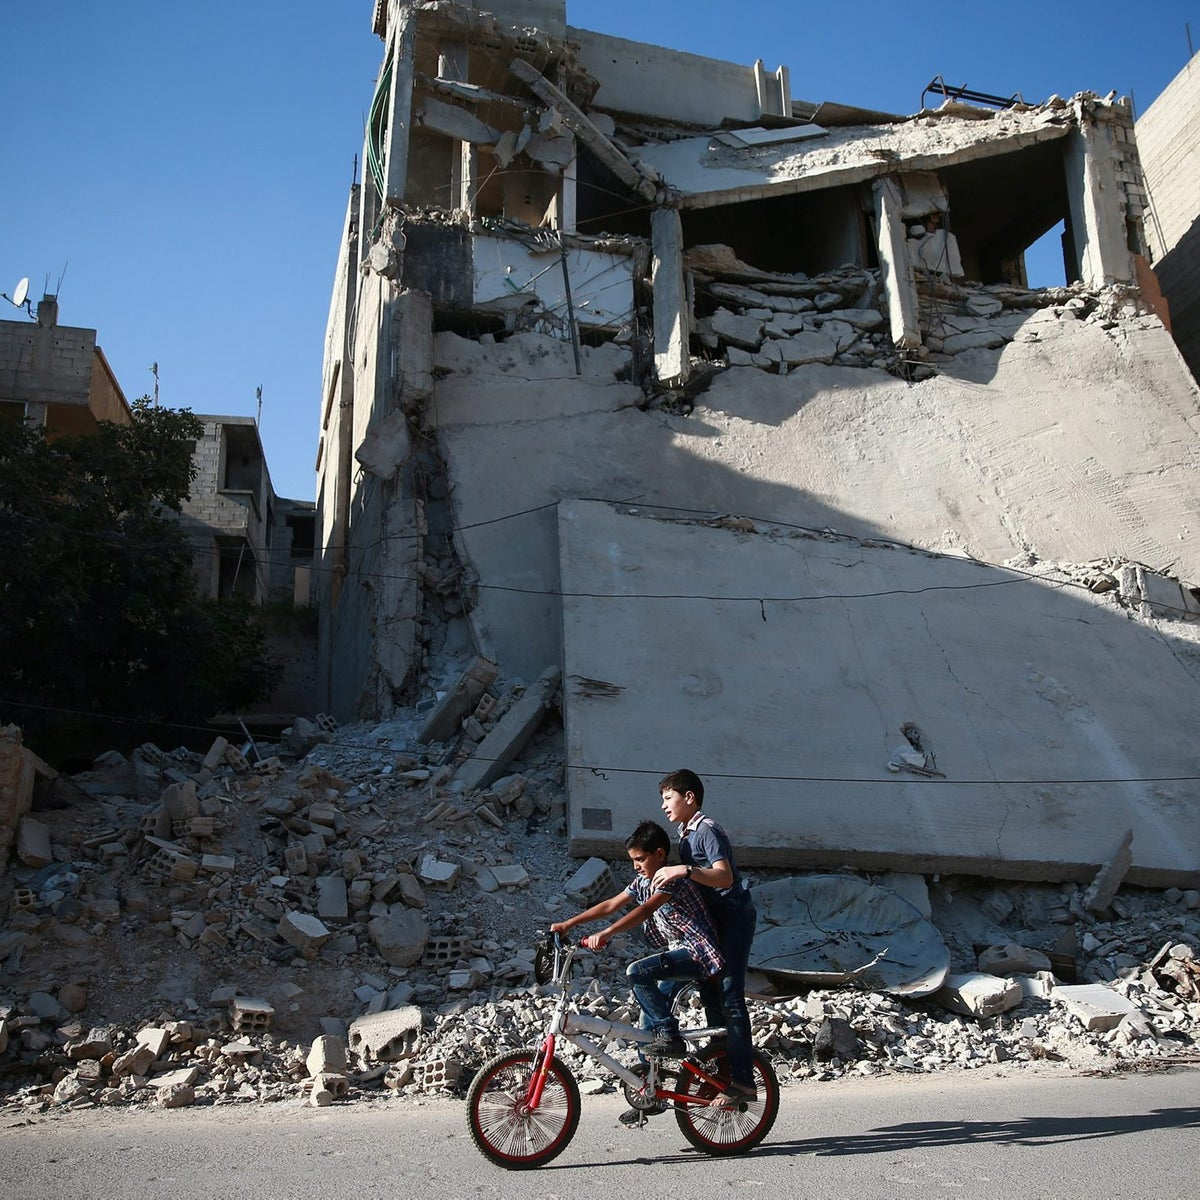 Boys ride a bicycle near rubble of damaged buildings in Douma, near Damascus, Syria August 14, 2017.